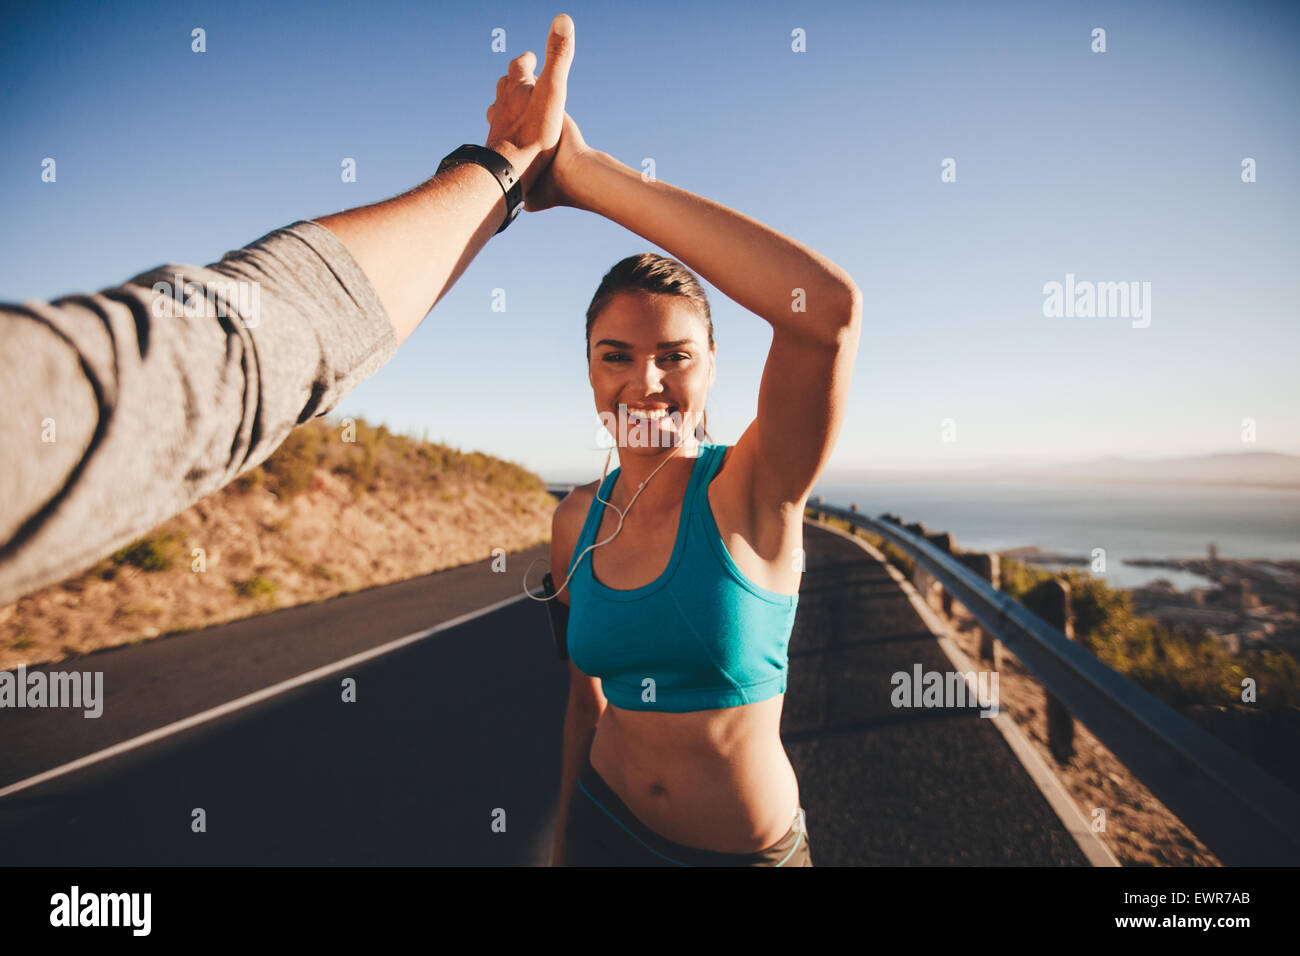 First person view of a man and woman doing a high five. Happy young woman giving high five to man after outdoor - Stock Image